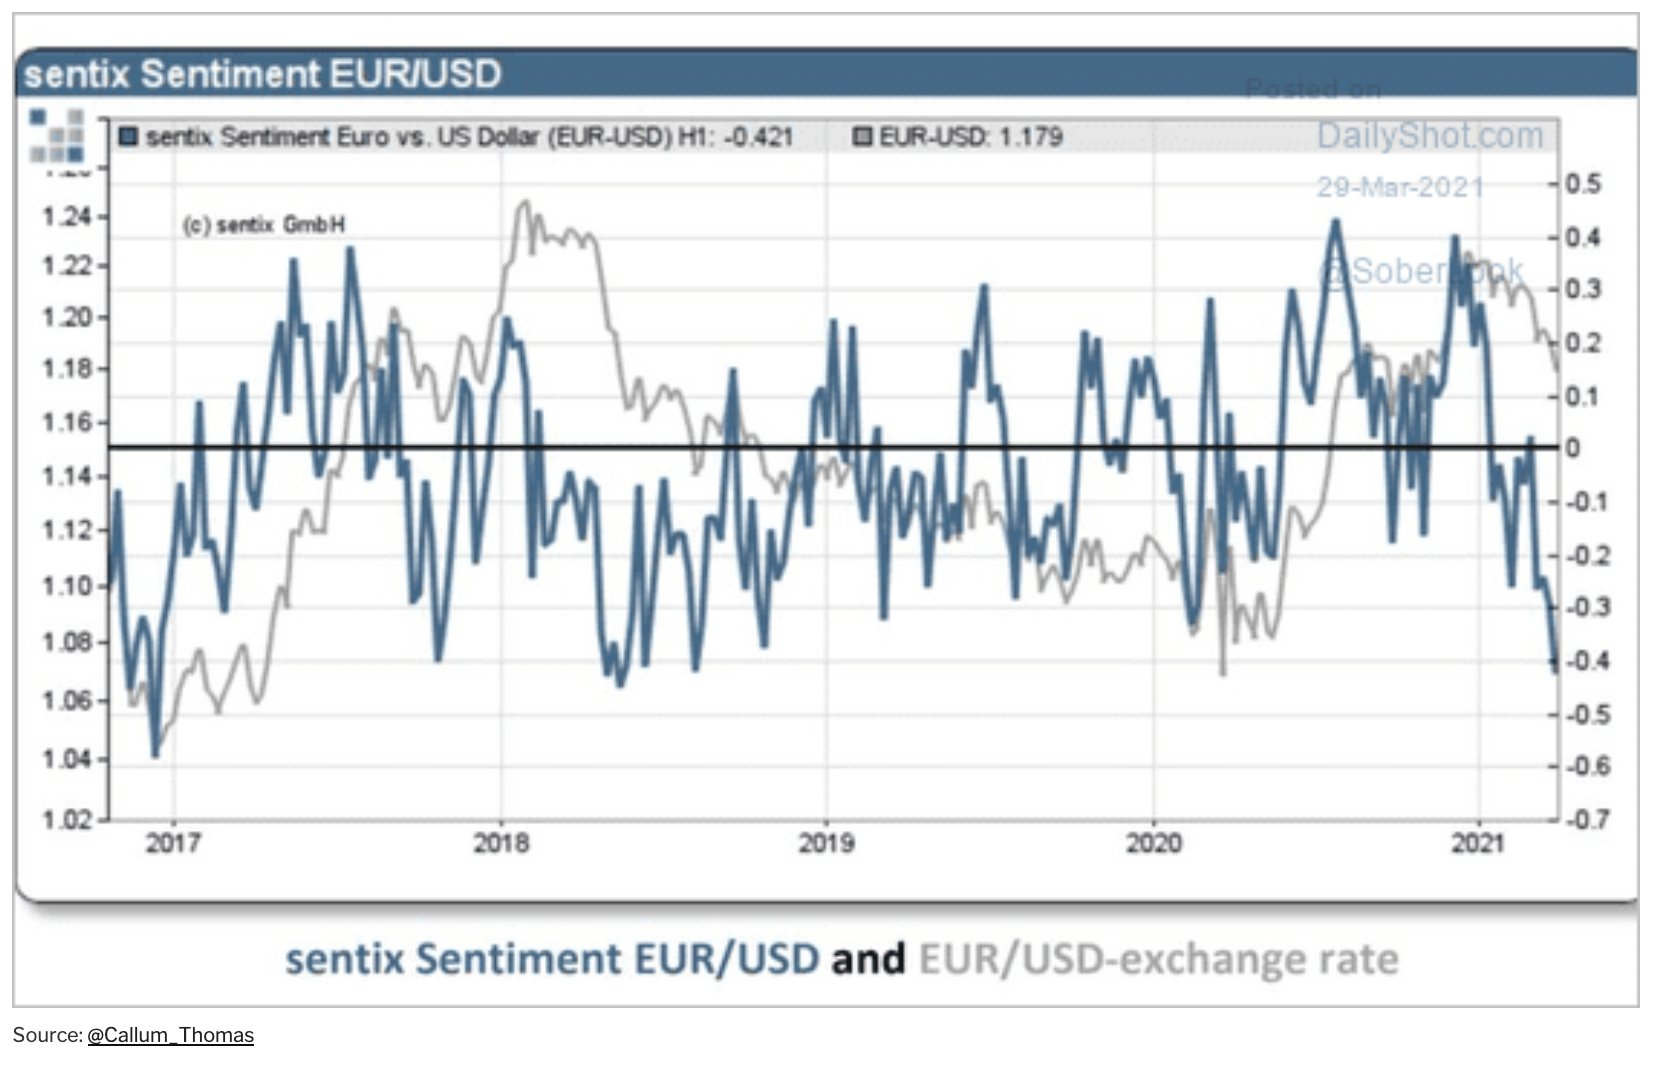 Sentiment towards EUR/USD is back at the lows of the last 3 years - Sentix